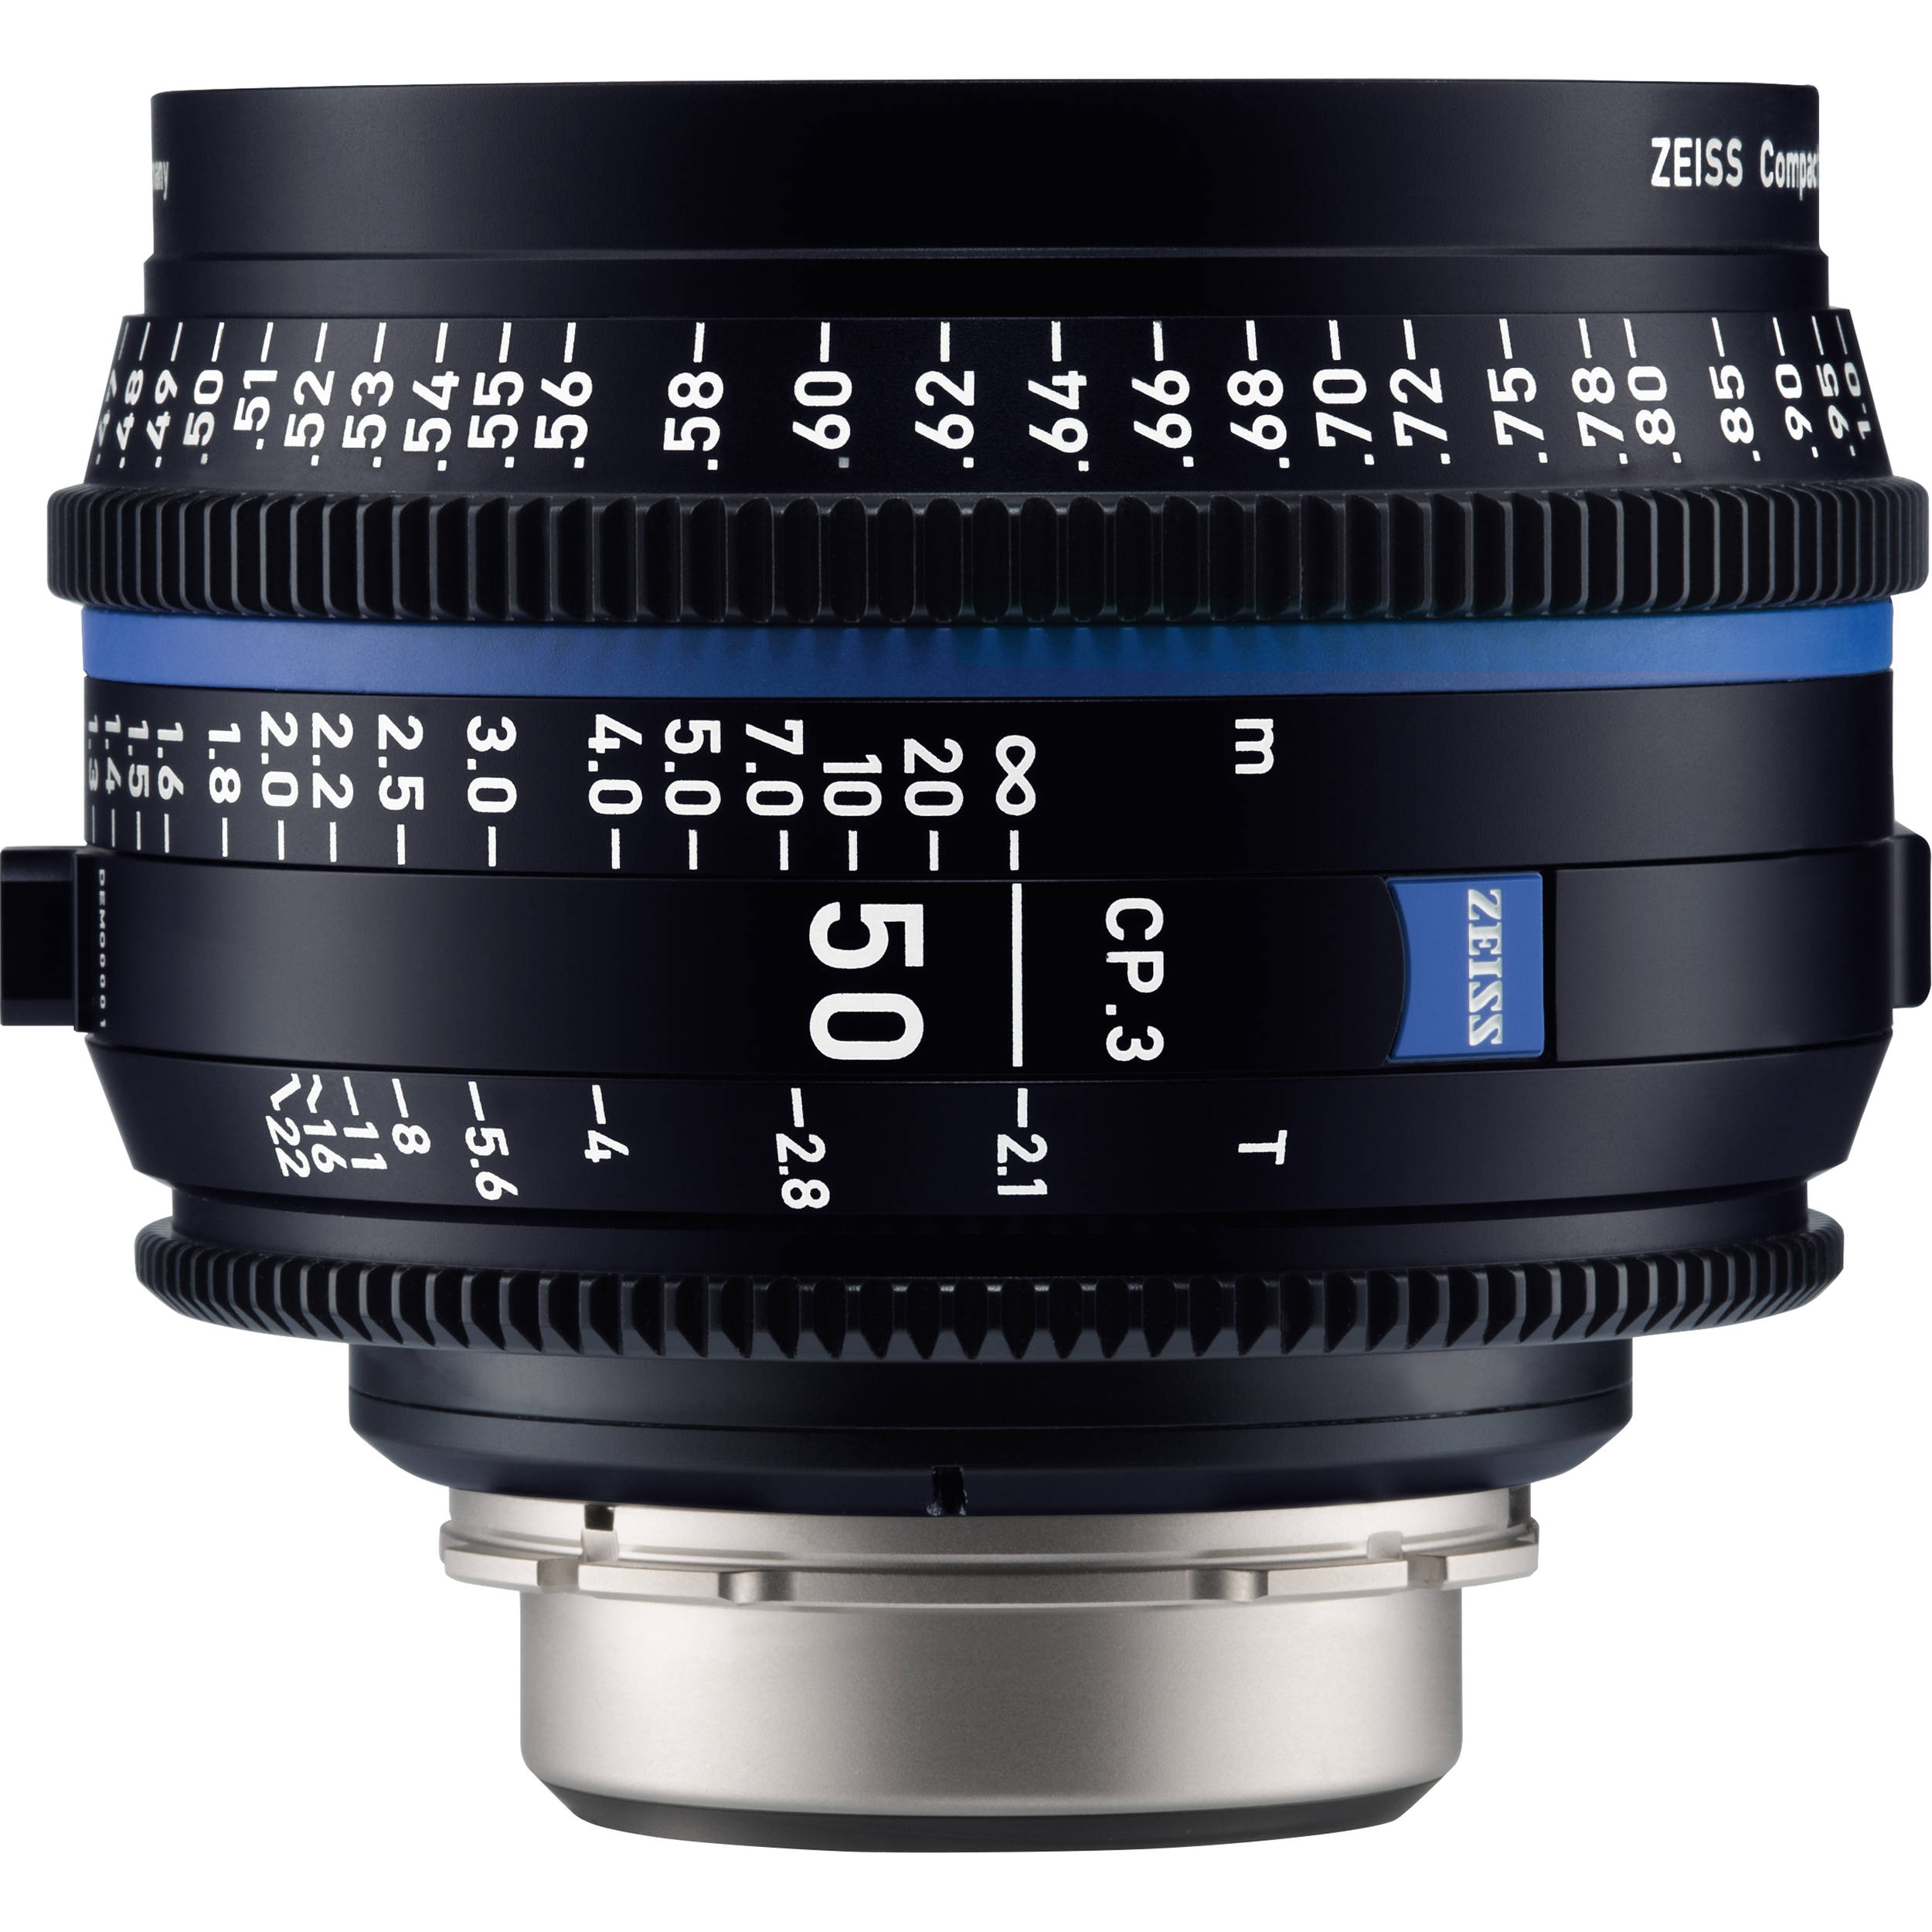 ZEISS CP 3 50mm T2 1 Compact Prime Lens (MFT Mount, Feet)